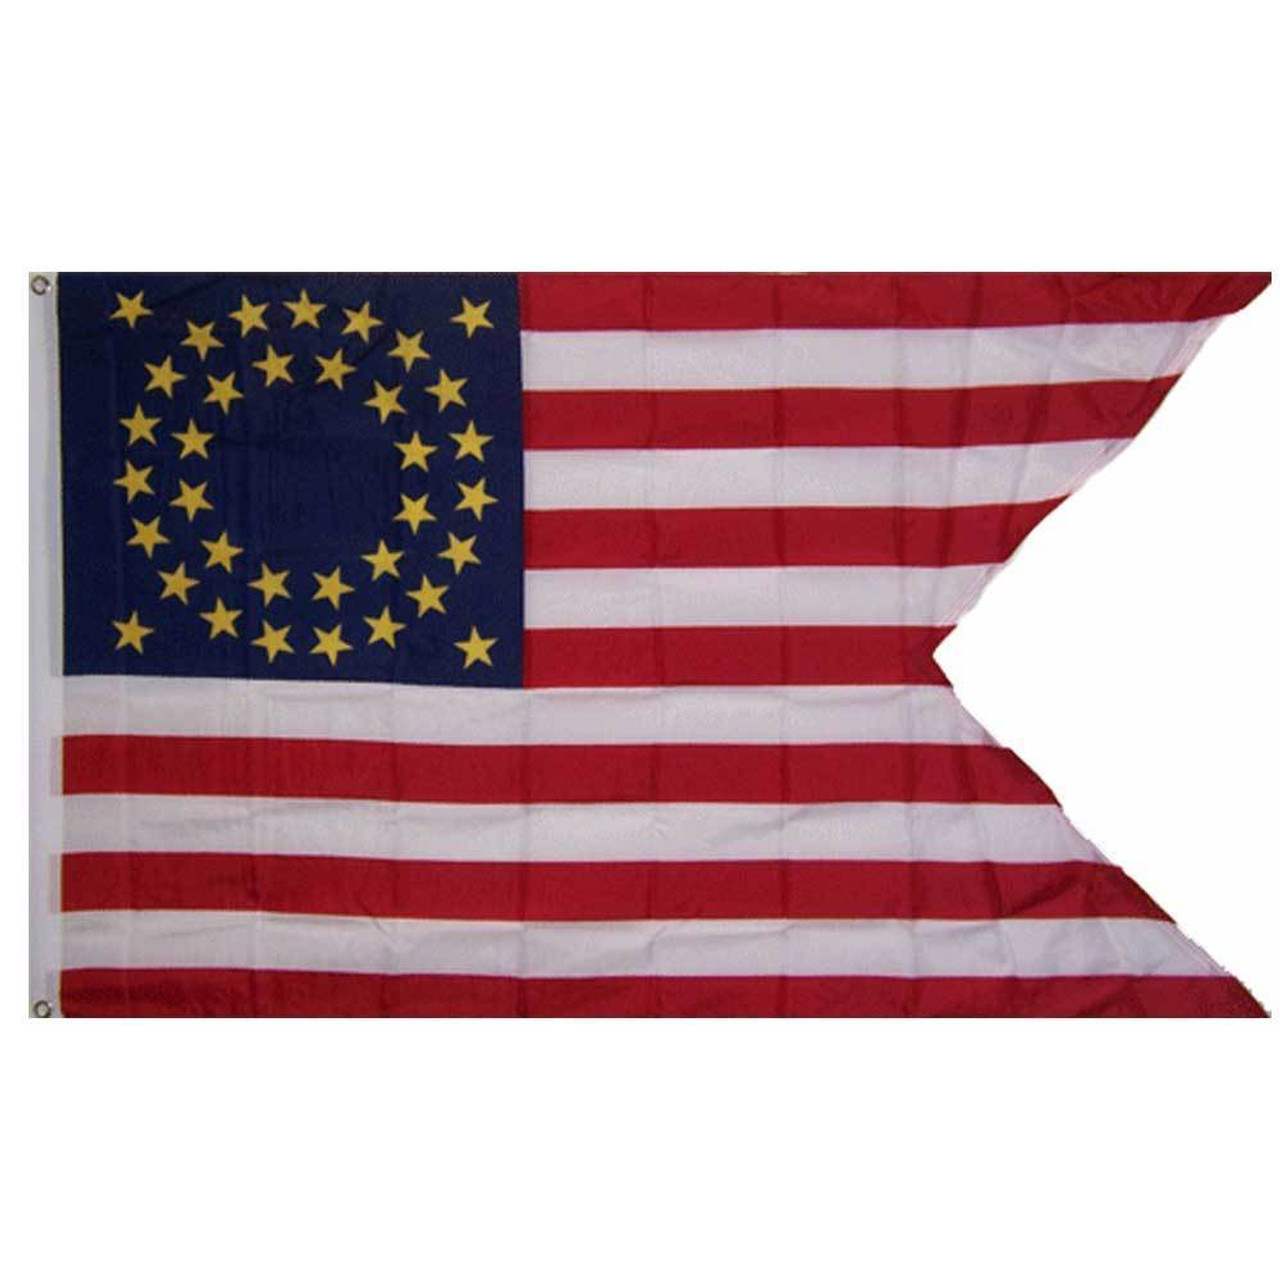 The Cavalry Guidon flag is based on the American flag, with a blue field in the top left corner, with 13 alternating red and white stripes. Major differences are: a large triangle cut horizontally out of the right side of the flag, known as a swallow-tail, and the 35 stars in the blue field are yellow and arranged in two concentric circles with one star in each of the four corners of the rectangular blue field. On the left edge of the flag is a header with rust-proof grommets for raising on a flagpole.